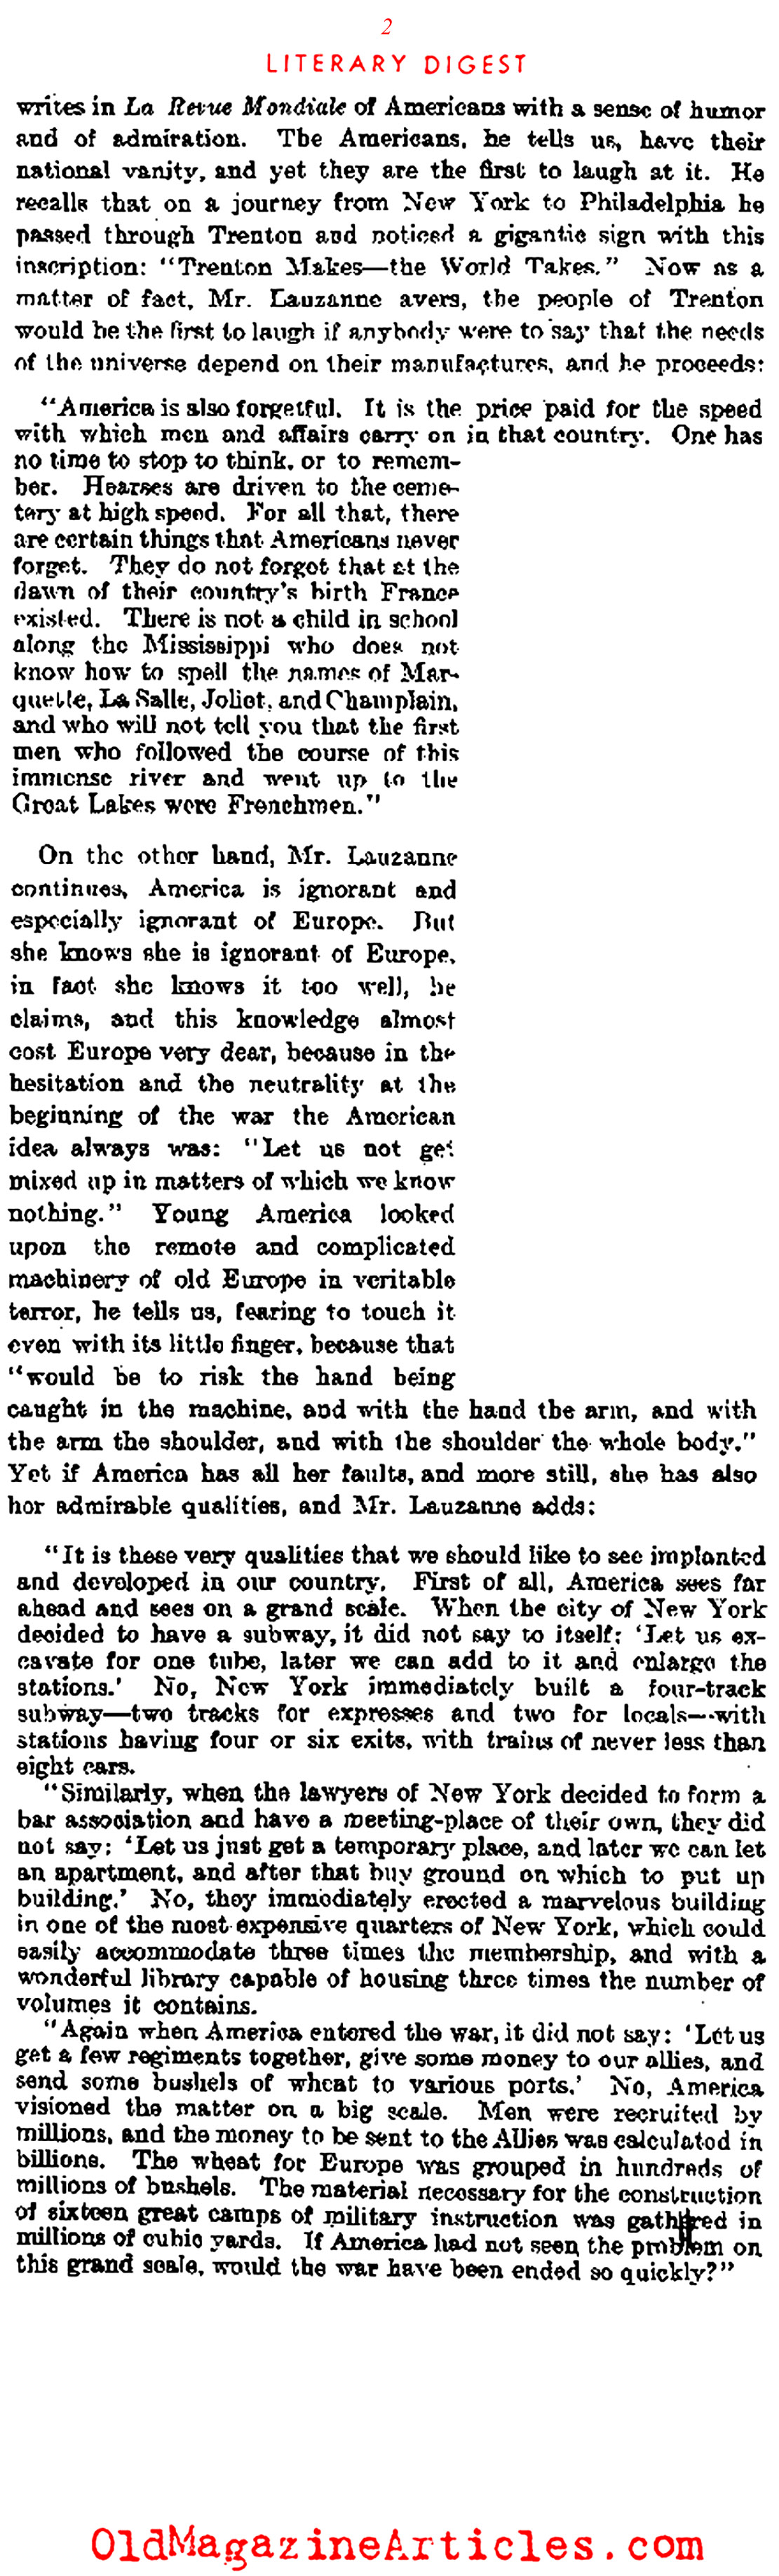 America Vilified in the European Press (Literary Digest, 1928)